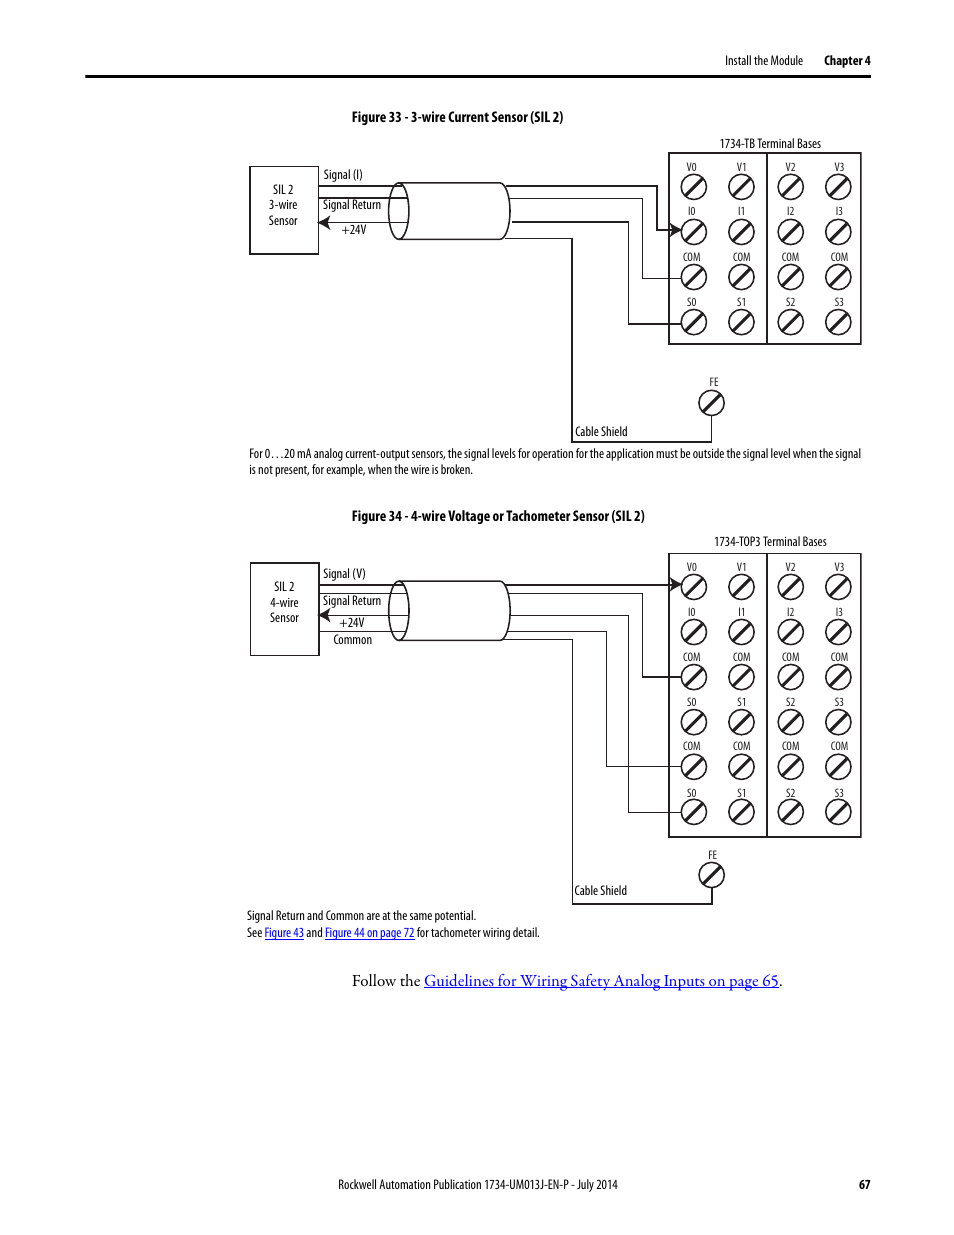 Fuse Box For Jaguar S Type Wiring Diagram Manual. Jaguar